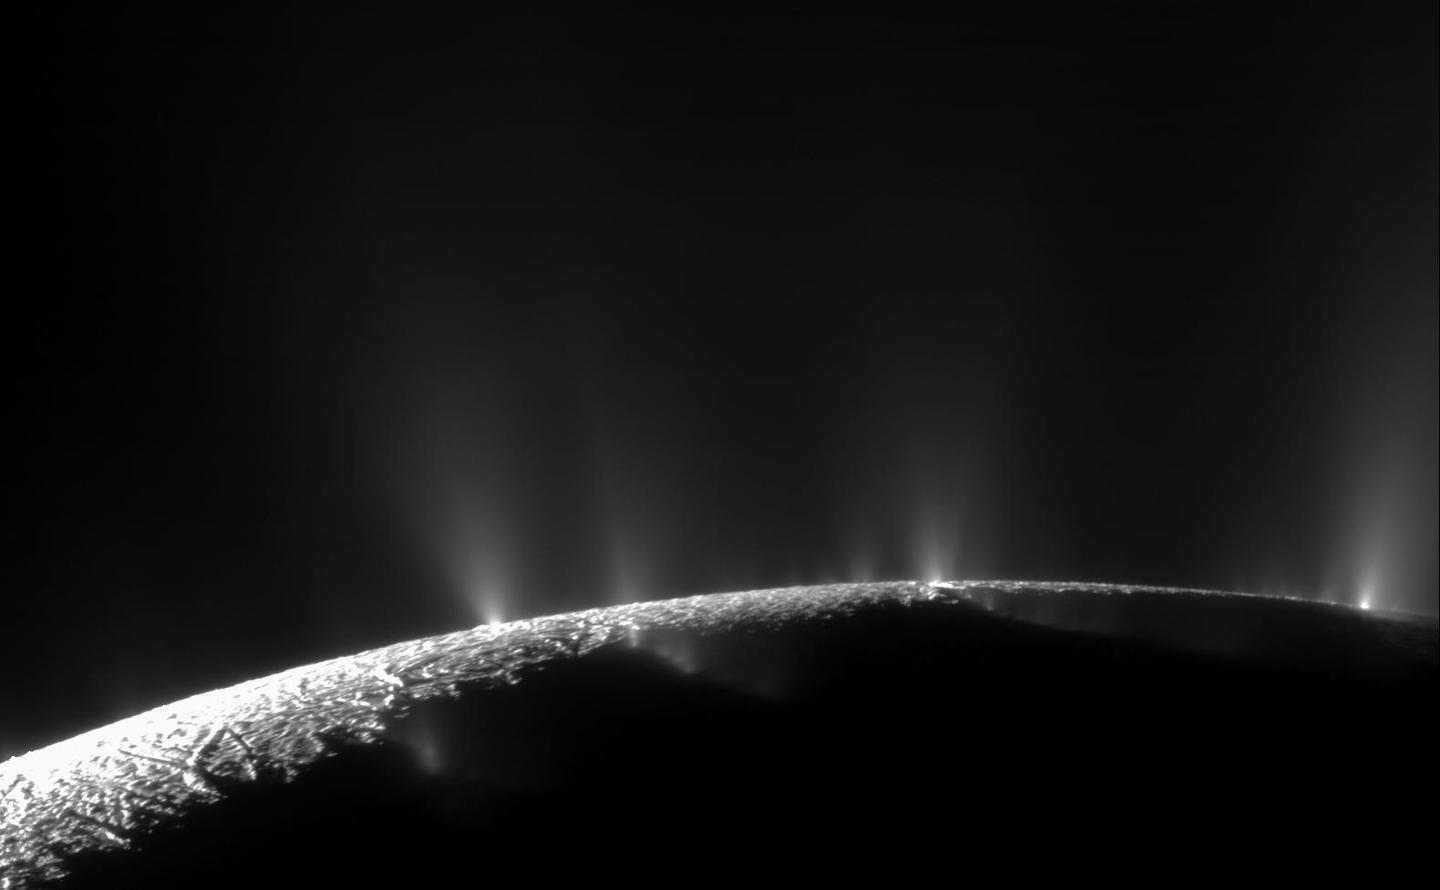 A mosaic of Enceladus' tiger-stripe geysers, comprised from images taken by the Cassini spacecraft during a 2009 flyby